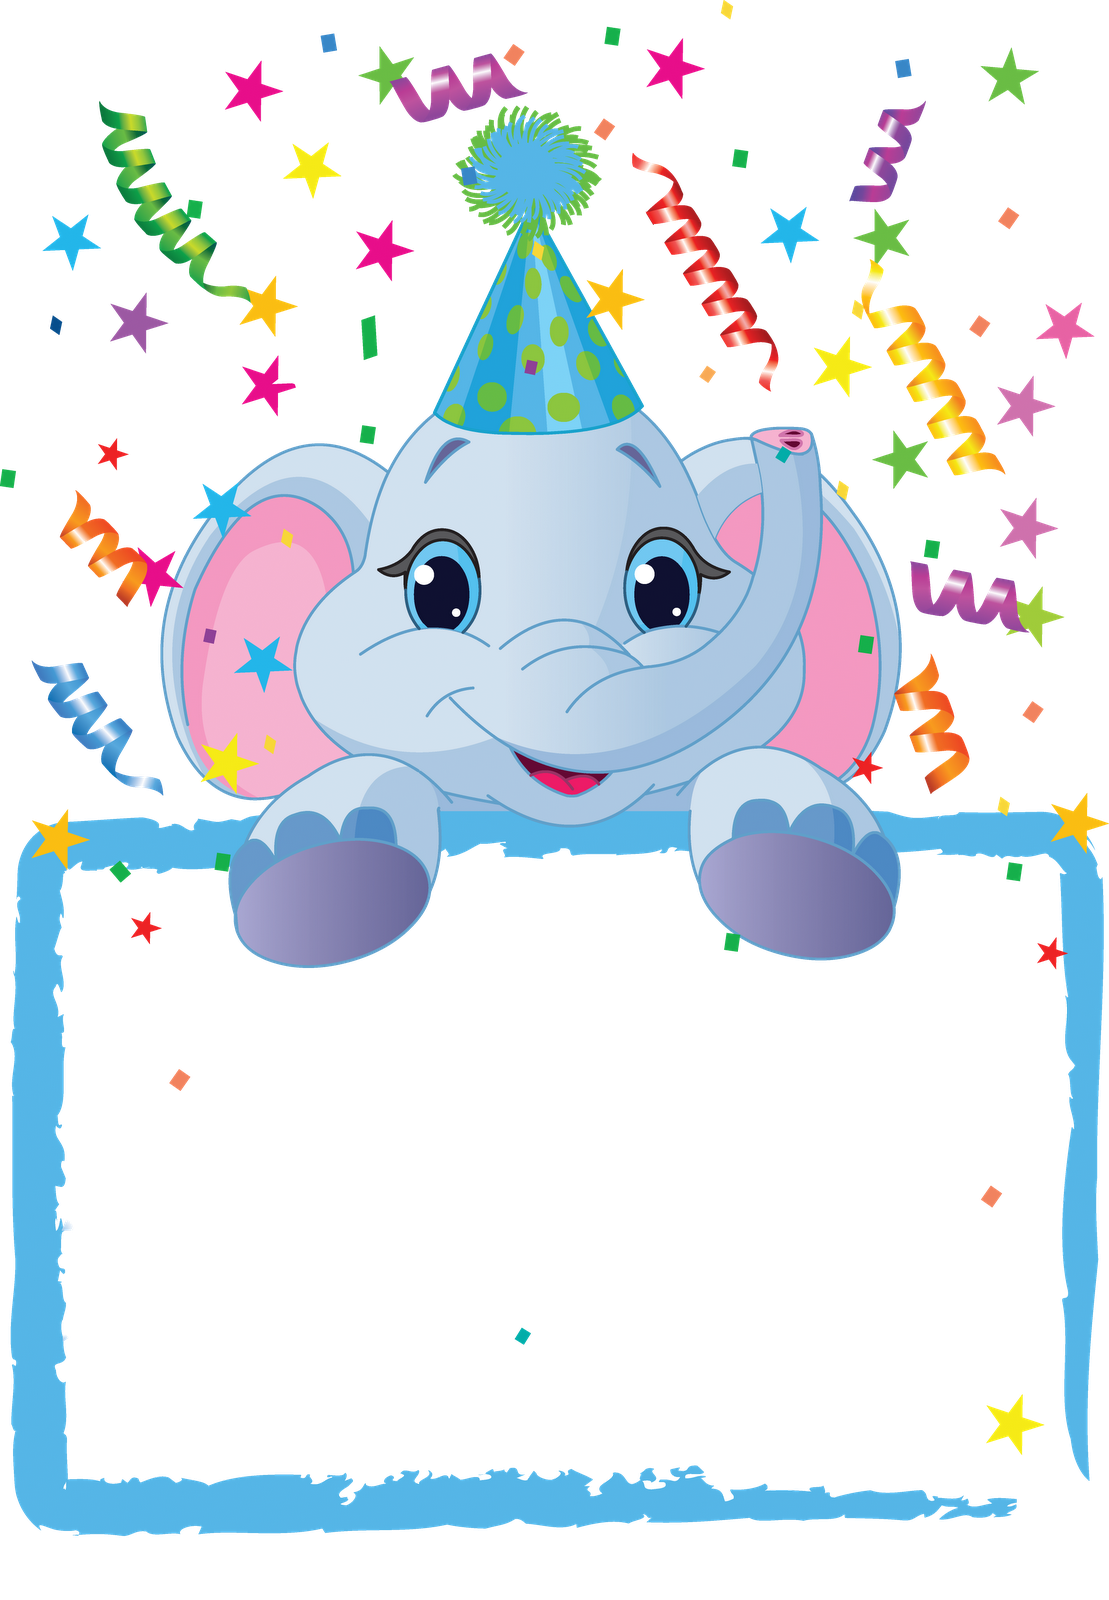 Clipart frame celebration. Birthday png marcos gratis